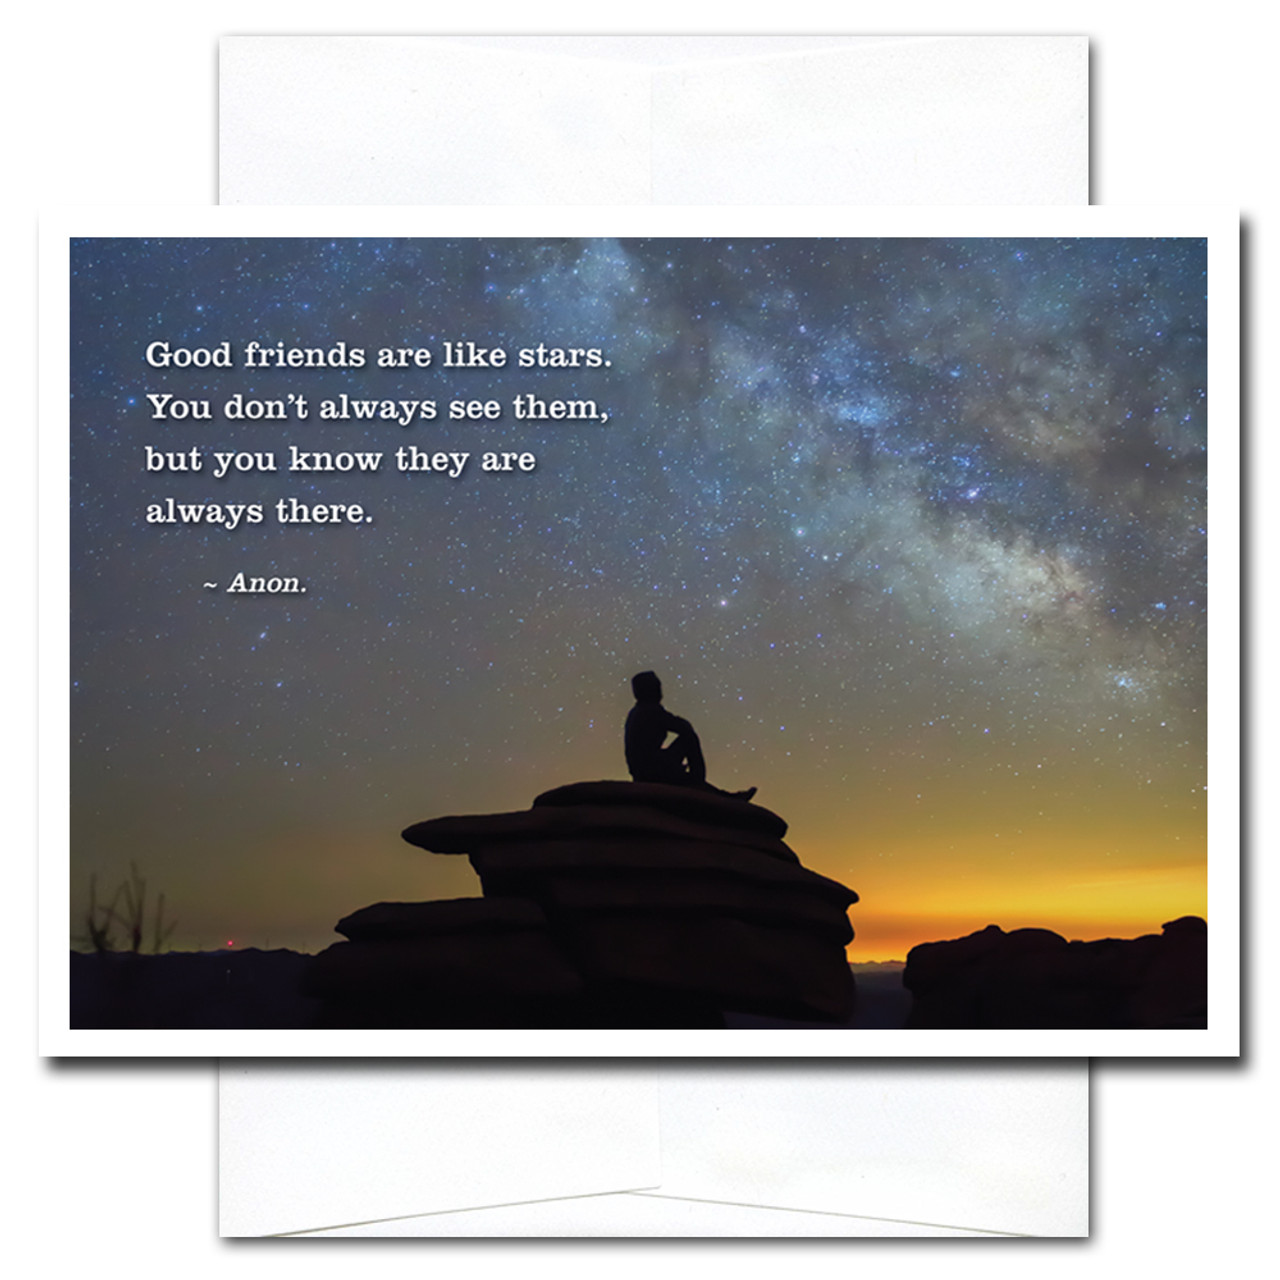 Like Stars New Year card features an individual looking up at a starry sky and the saying: Good friends are like stars. You don't always see them, but you know they are always there. -Anon.